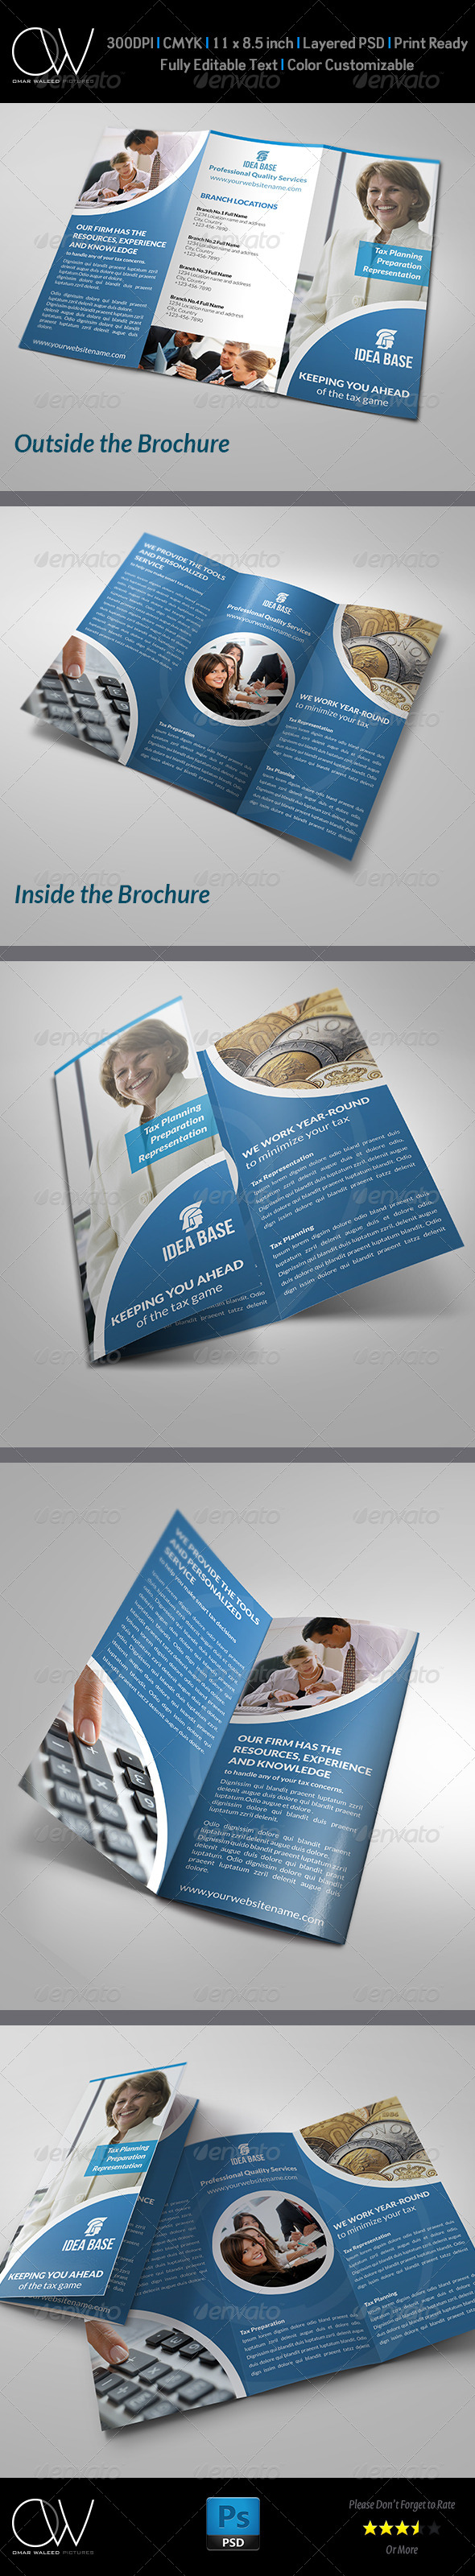 Accounting Services Tri-Fold Brochure - Brochures Print Templates